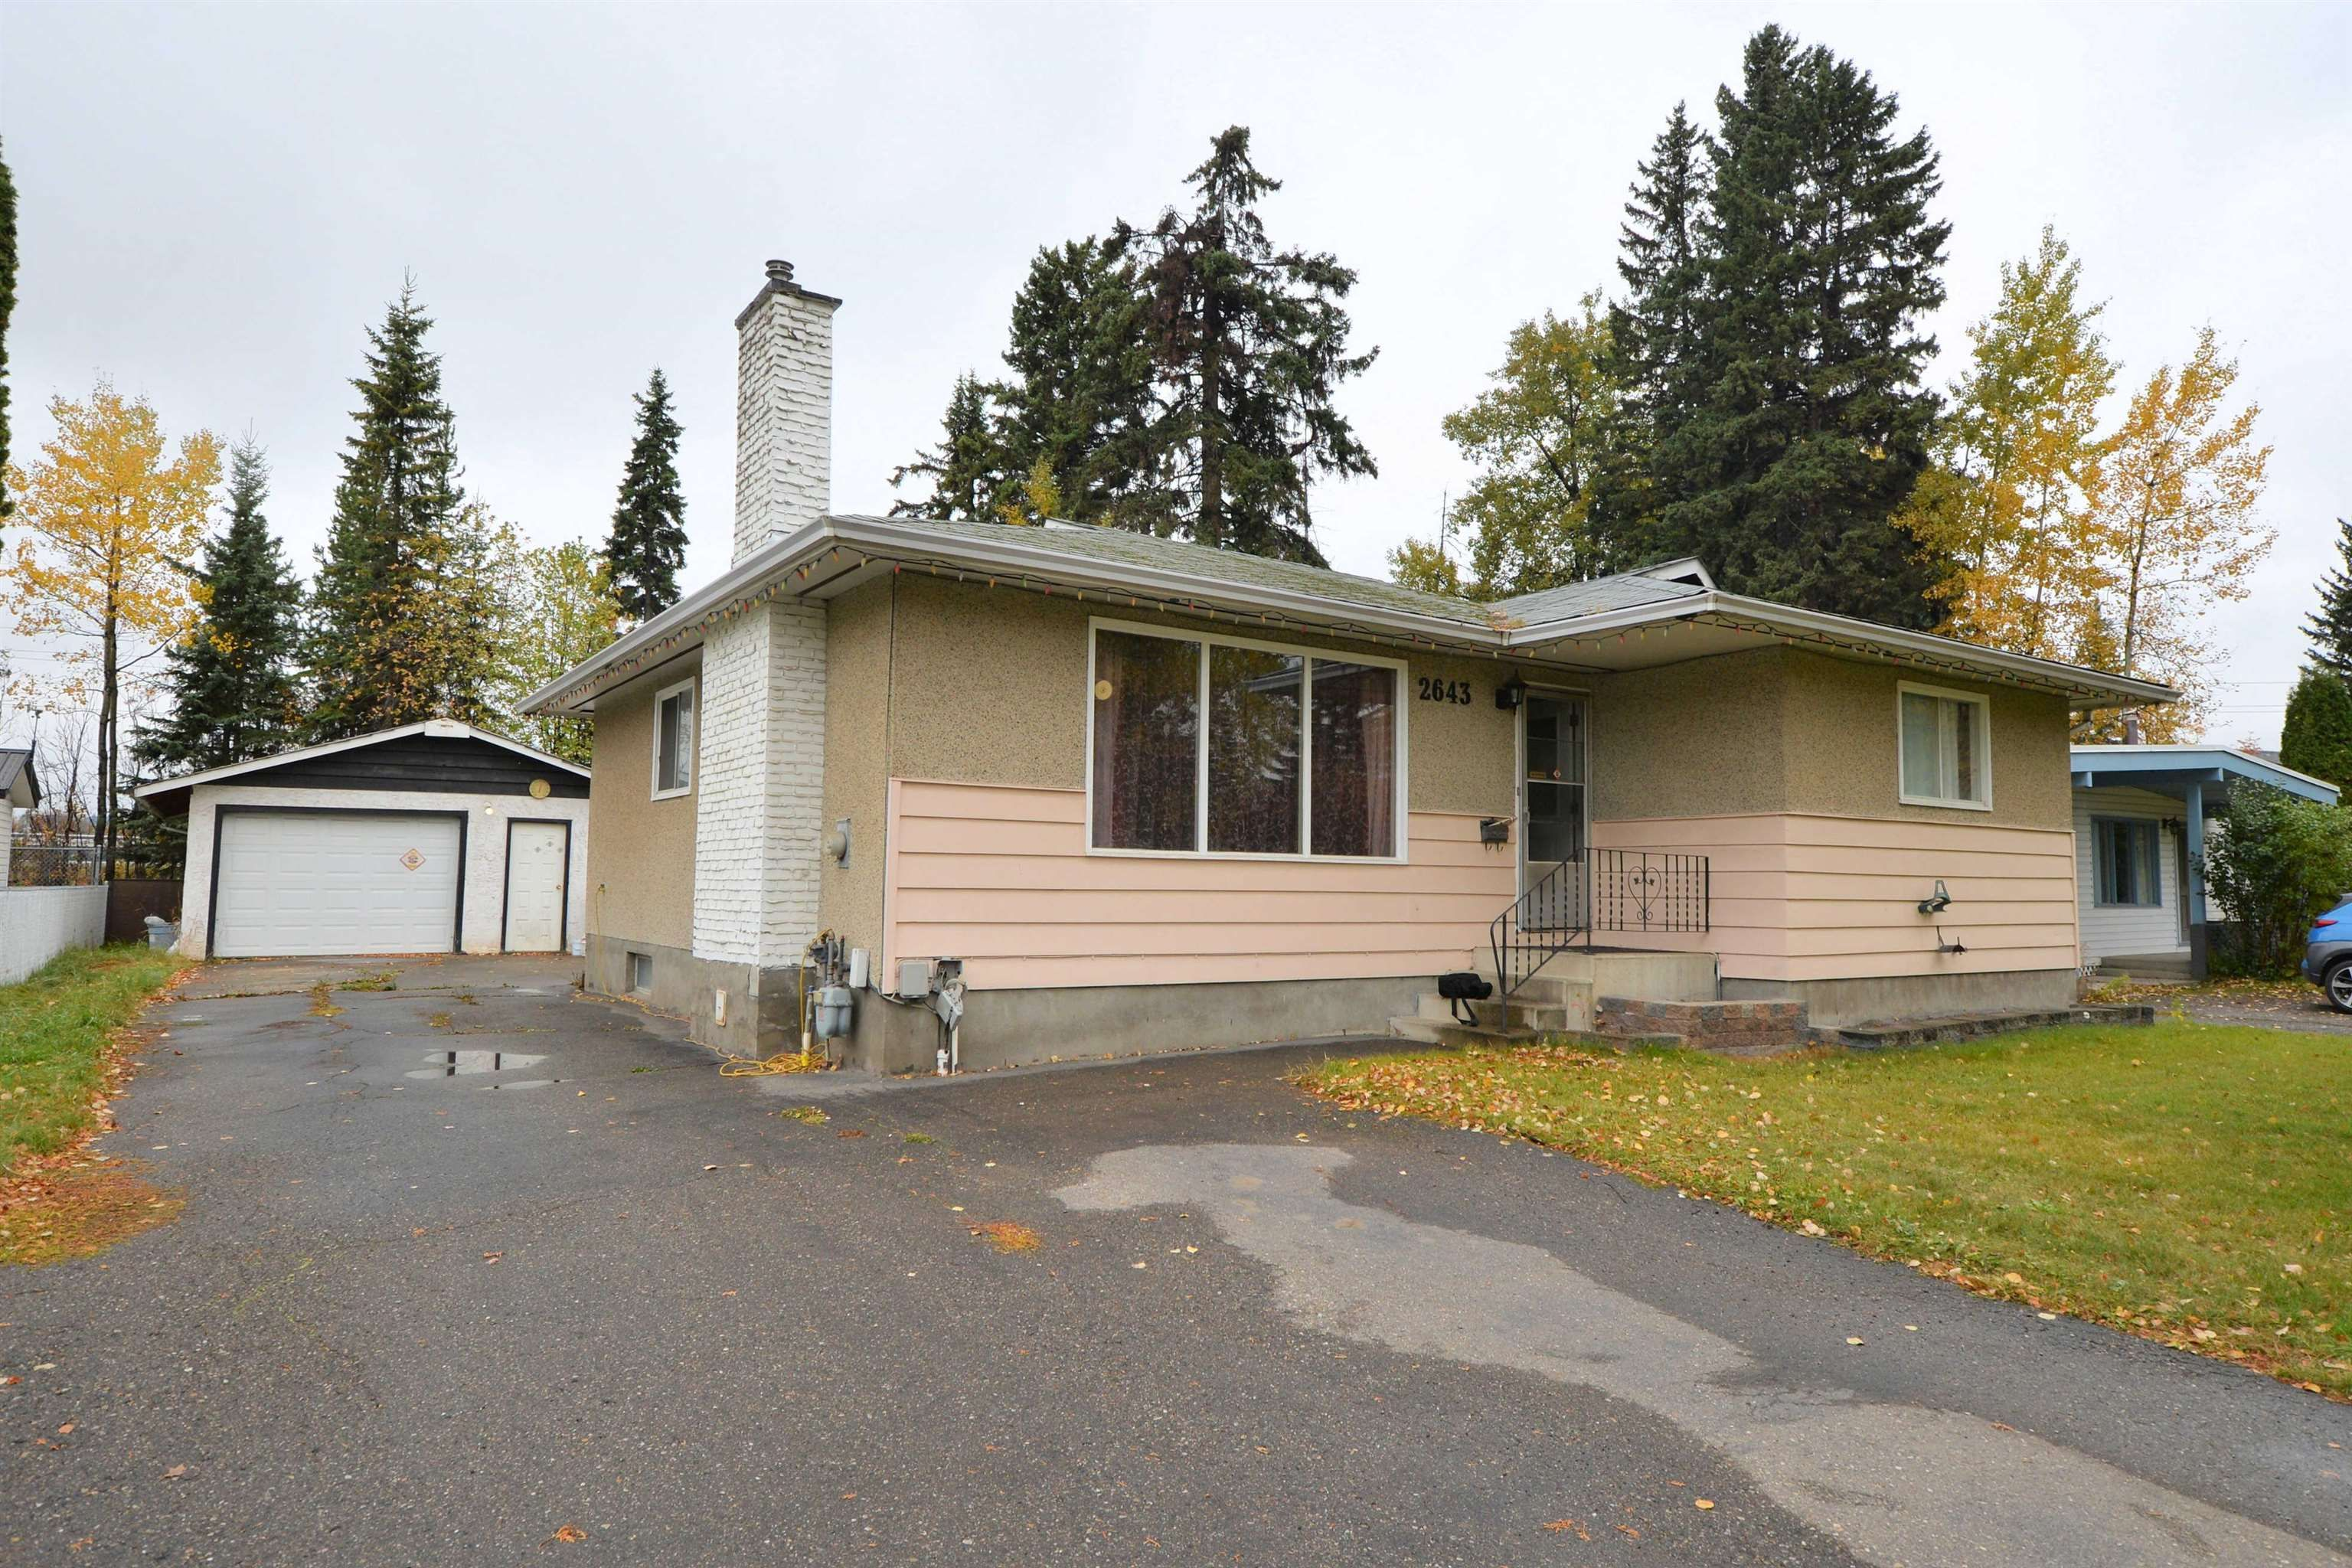 Main Photo: 2643 ABBOTT Crescent in Prince George: Assman House for sale (PG City Central (Zone 72))  : MLS®# R2623661